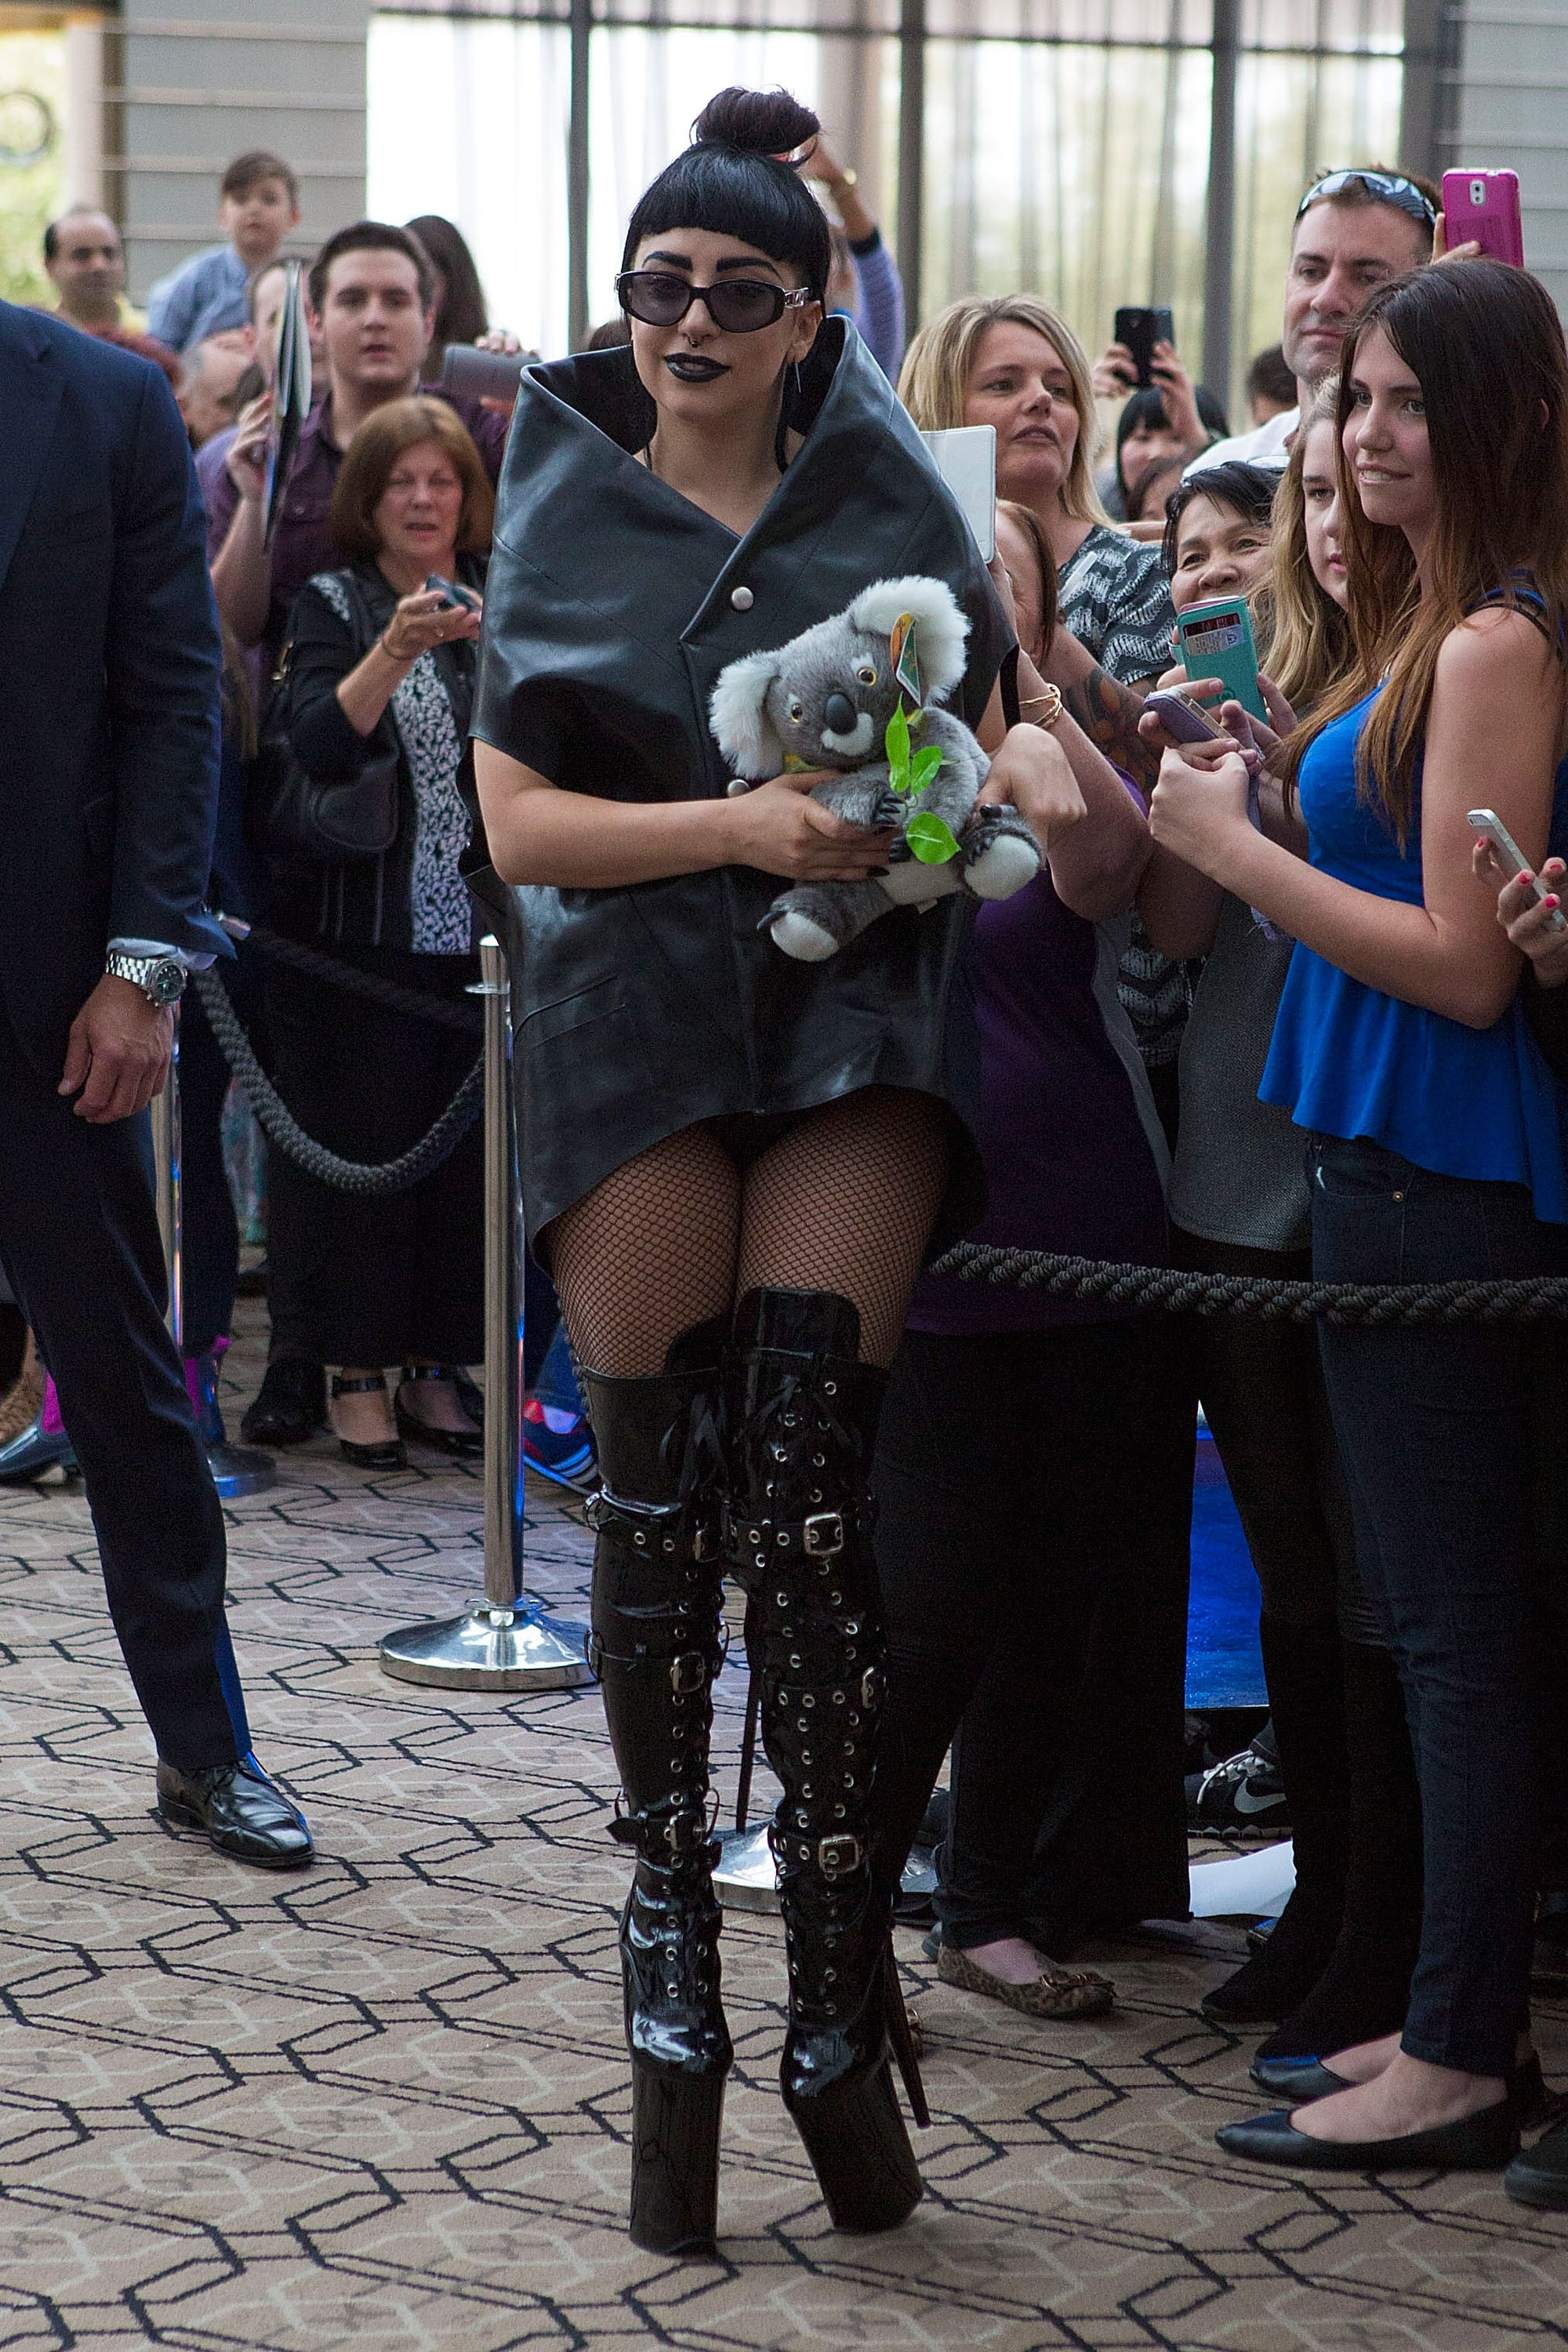 Lady Gaga received a stuffed panda toy from a fan   in Perth, Australia, on Sunday.